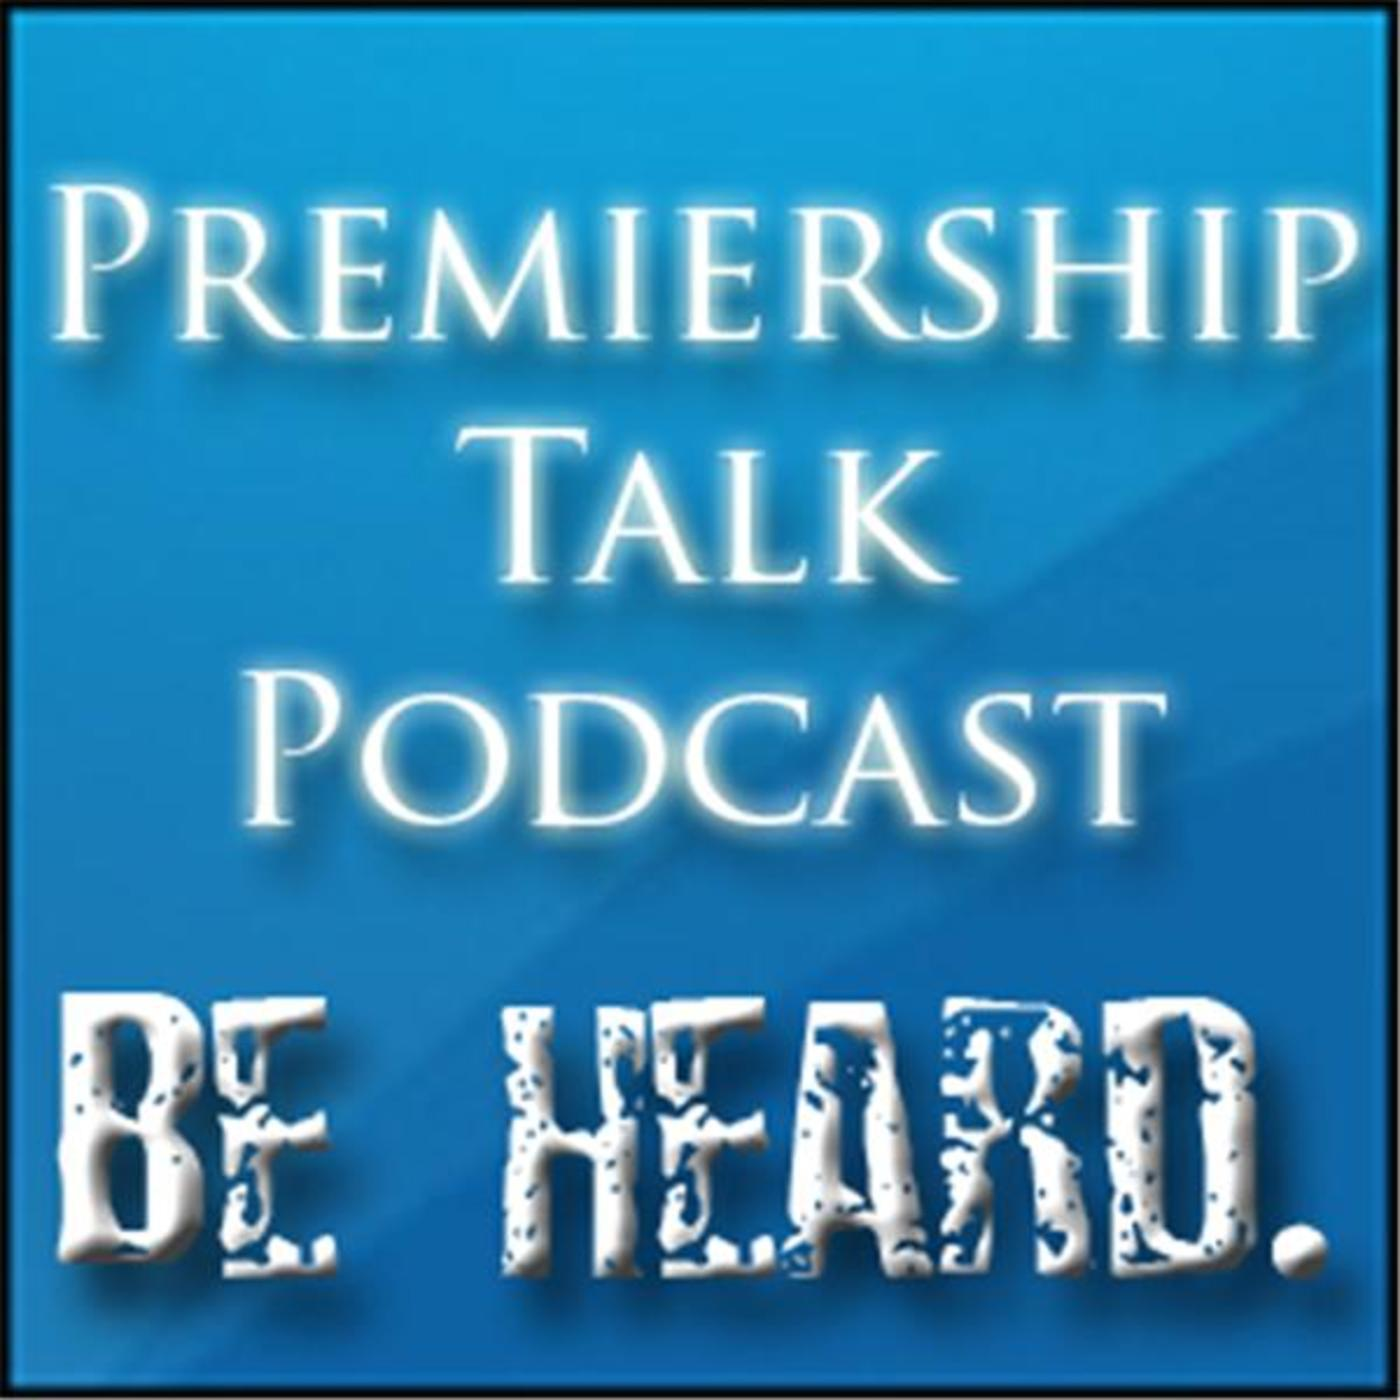 Premiership Talk Podcast